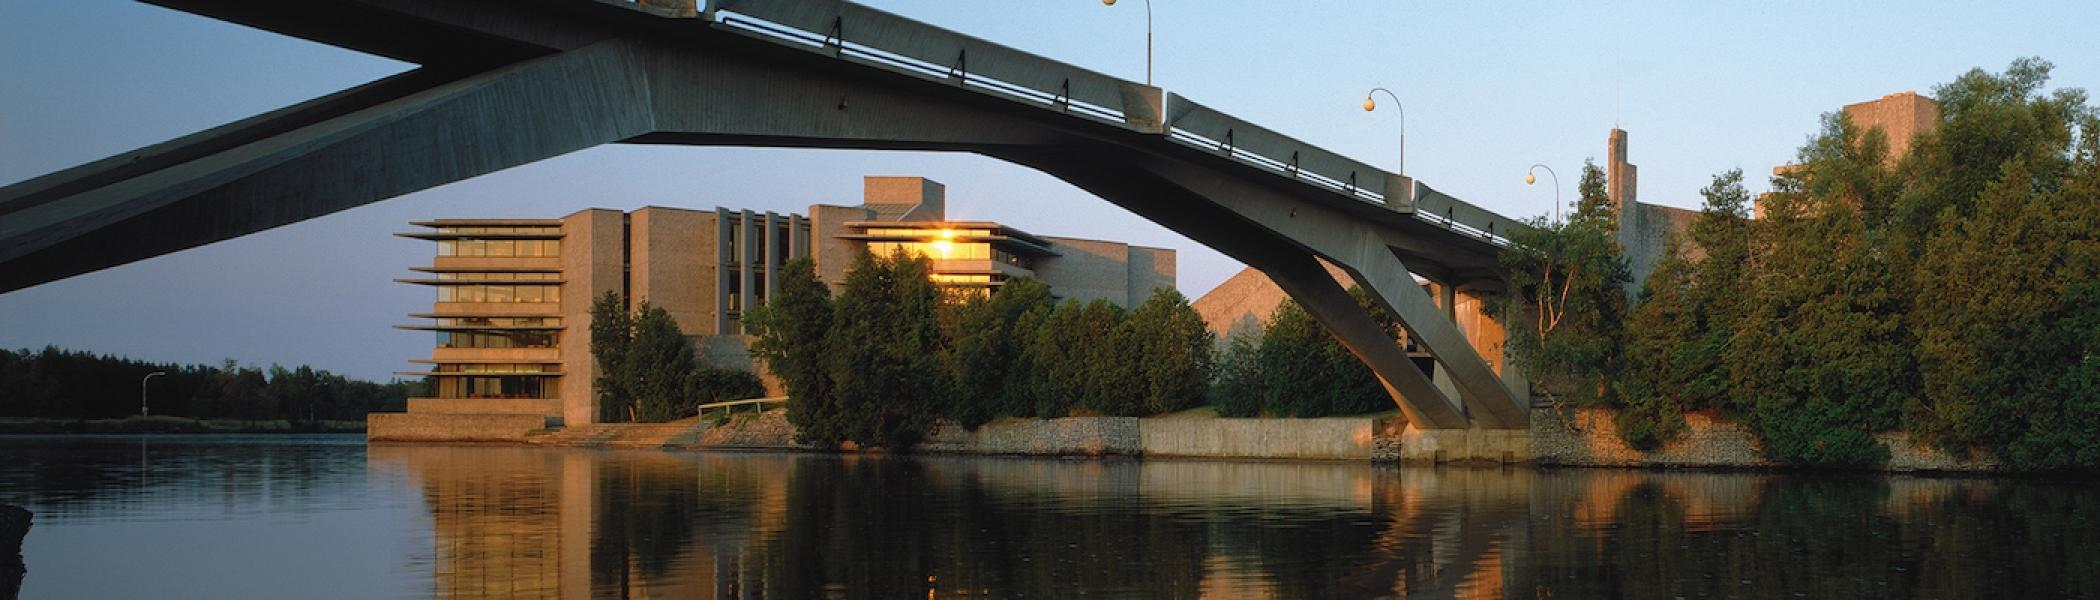 View of the Bata Library and the Bridge from East Bank Trent University